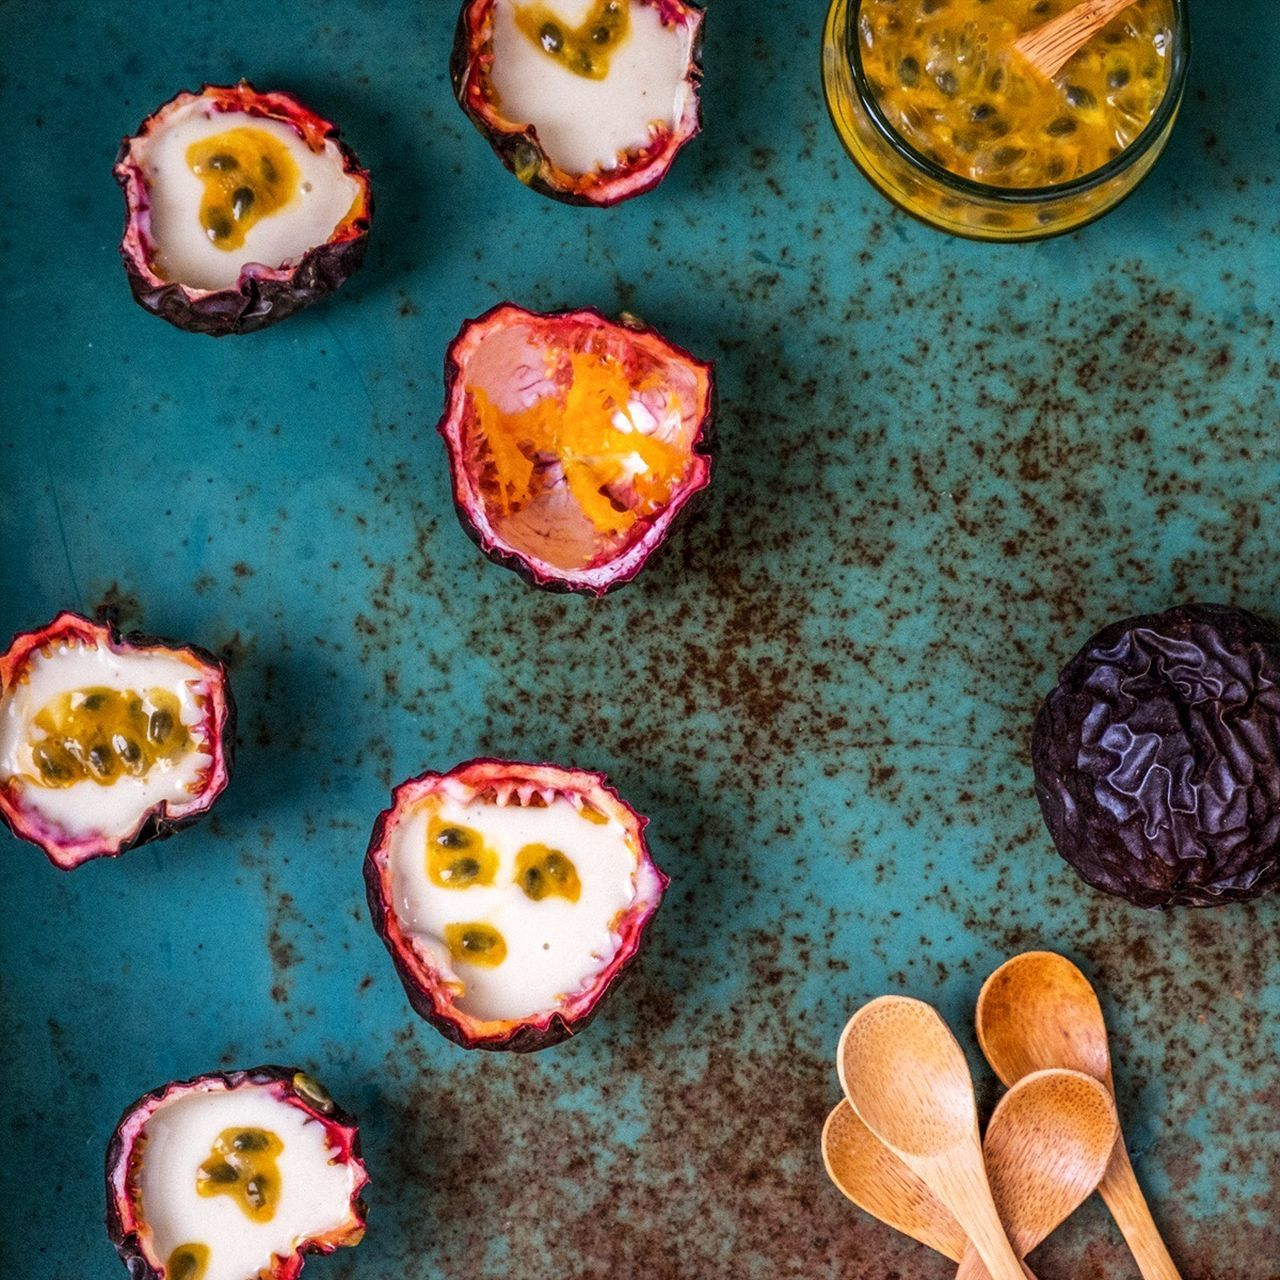 Sweet Food Dessert Foodpic Food Styling Food Photography Food And Drink Ready-to-eat Healthy Eating Fruit Vegan Food FoodPairing Passion Fruits Passion Fruit Eat The Rainbow Fresh On Market 2017